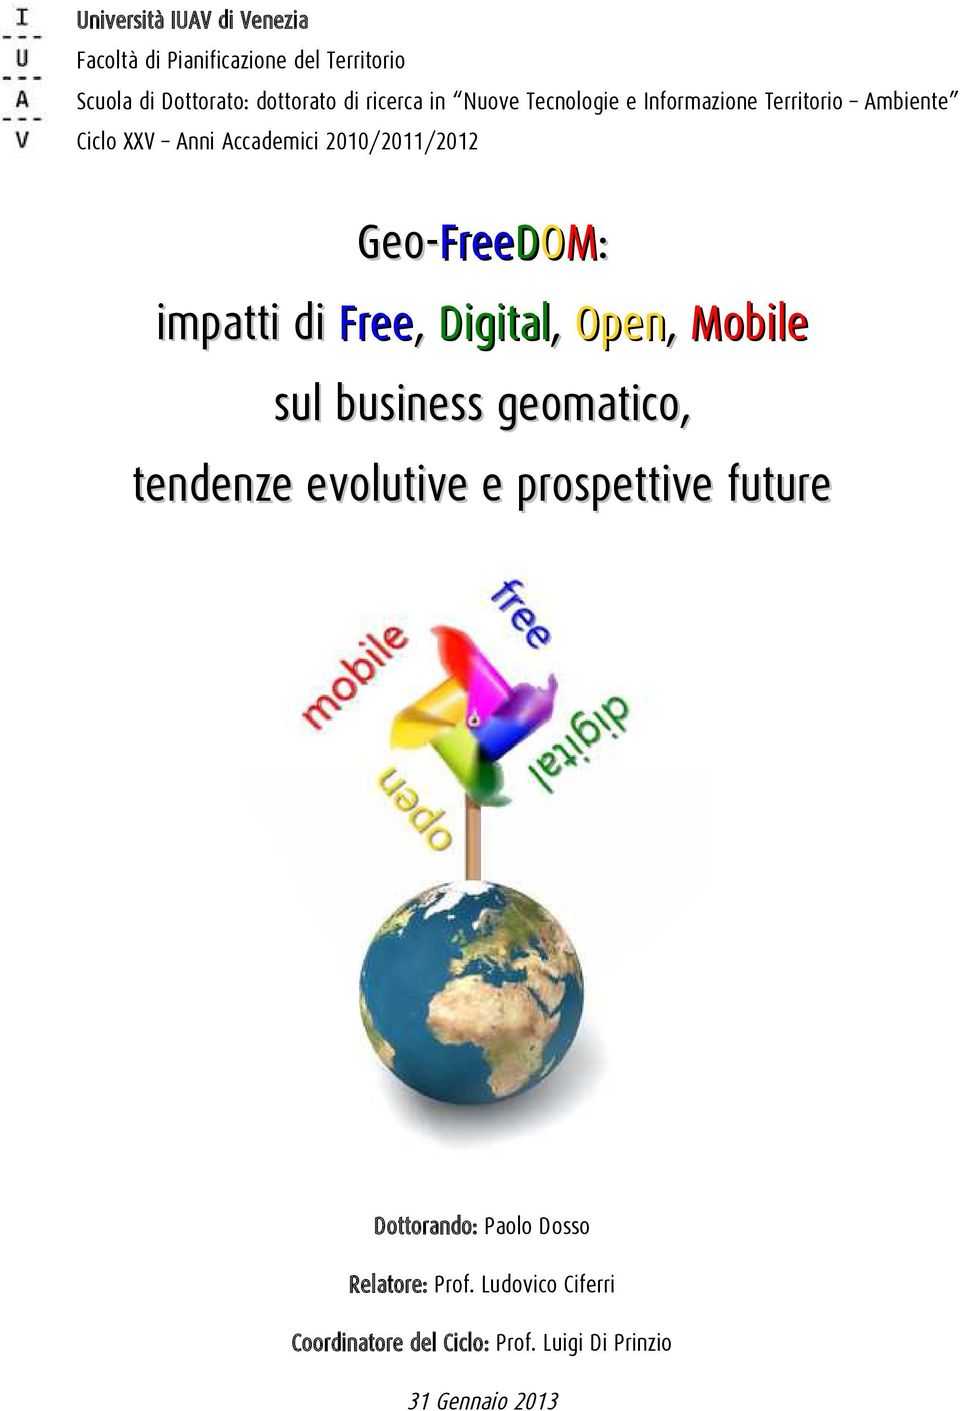 FreeDOM: impatti di Free, Digital, Open, Mobile sul business geomatico, tendenze evolutive e prospettive future